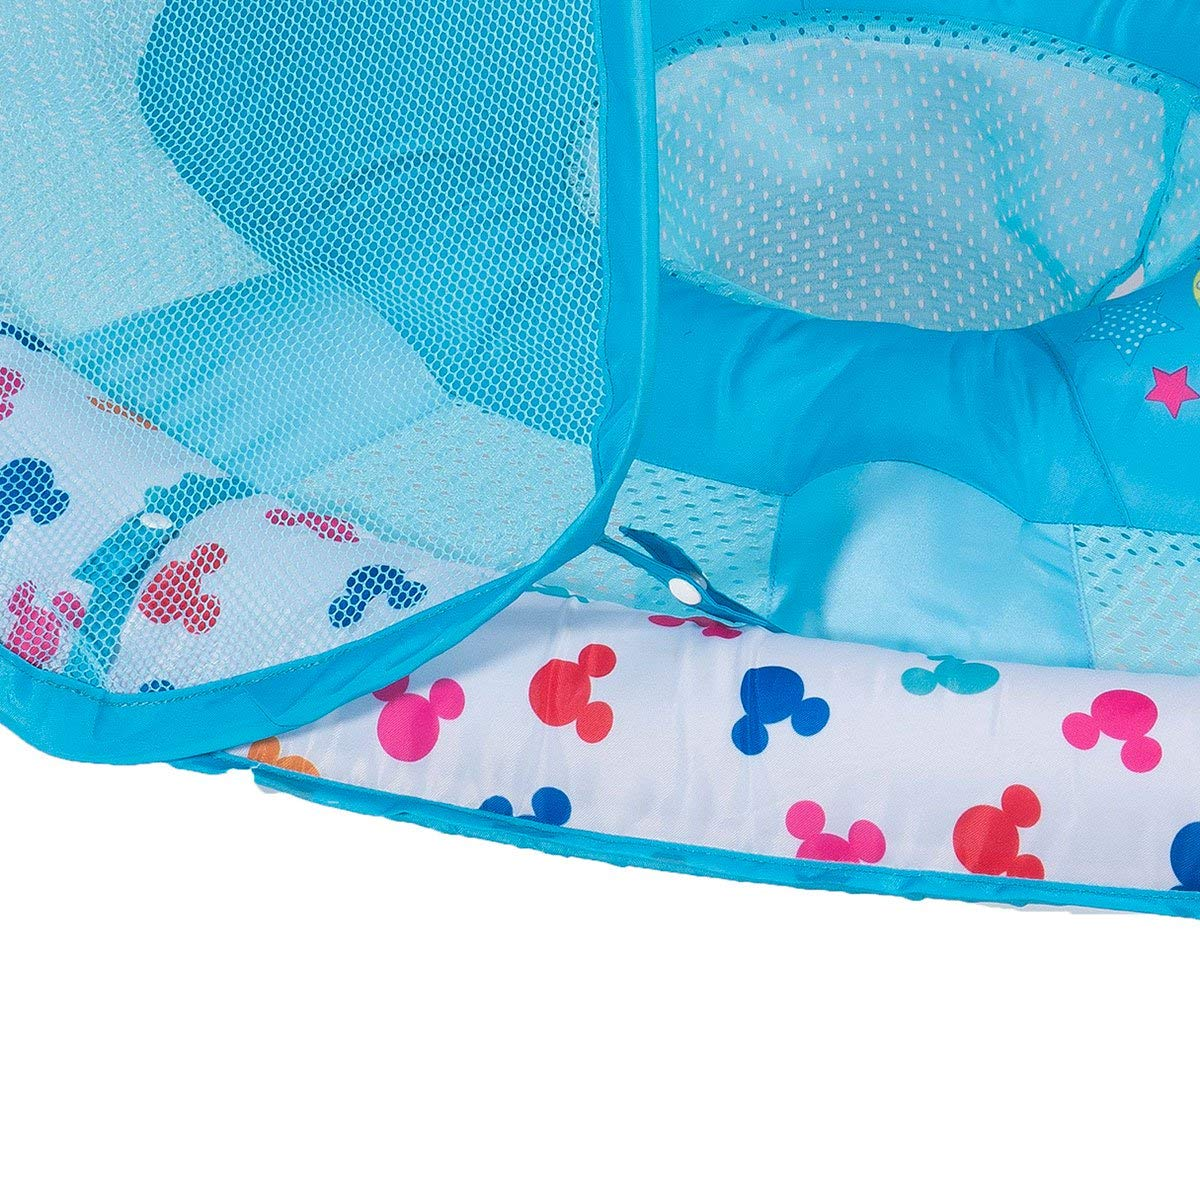 SwimWays Inflatable Infant Baby Swimming Pool Float w/Canopy, Mickey Mouse (2 Pack) by SwimWays (Image #5)